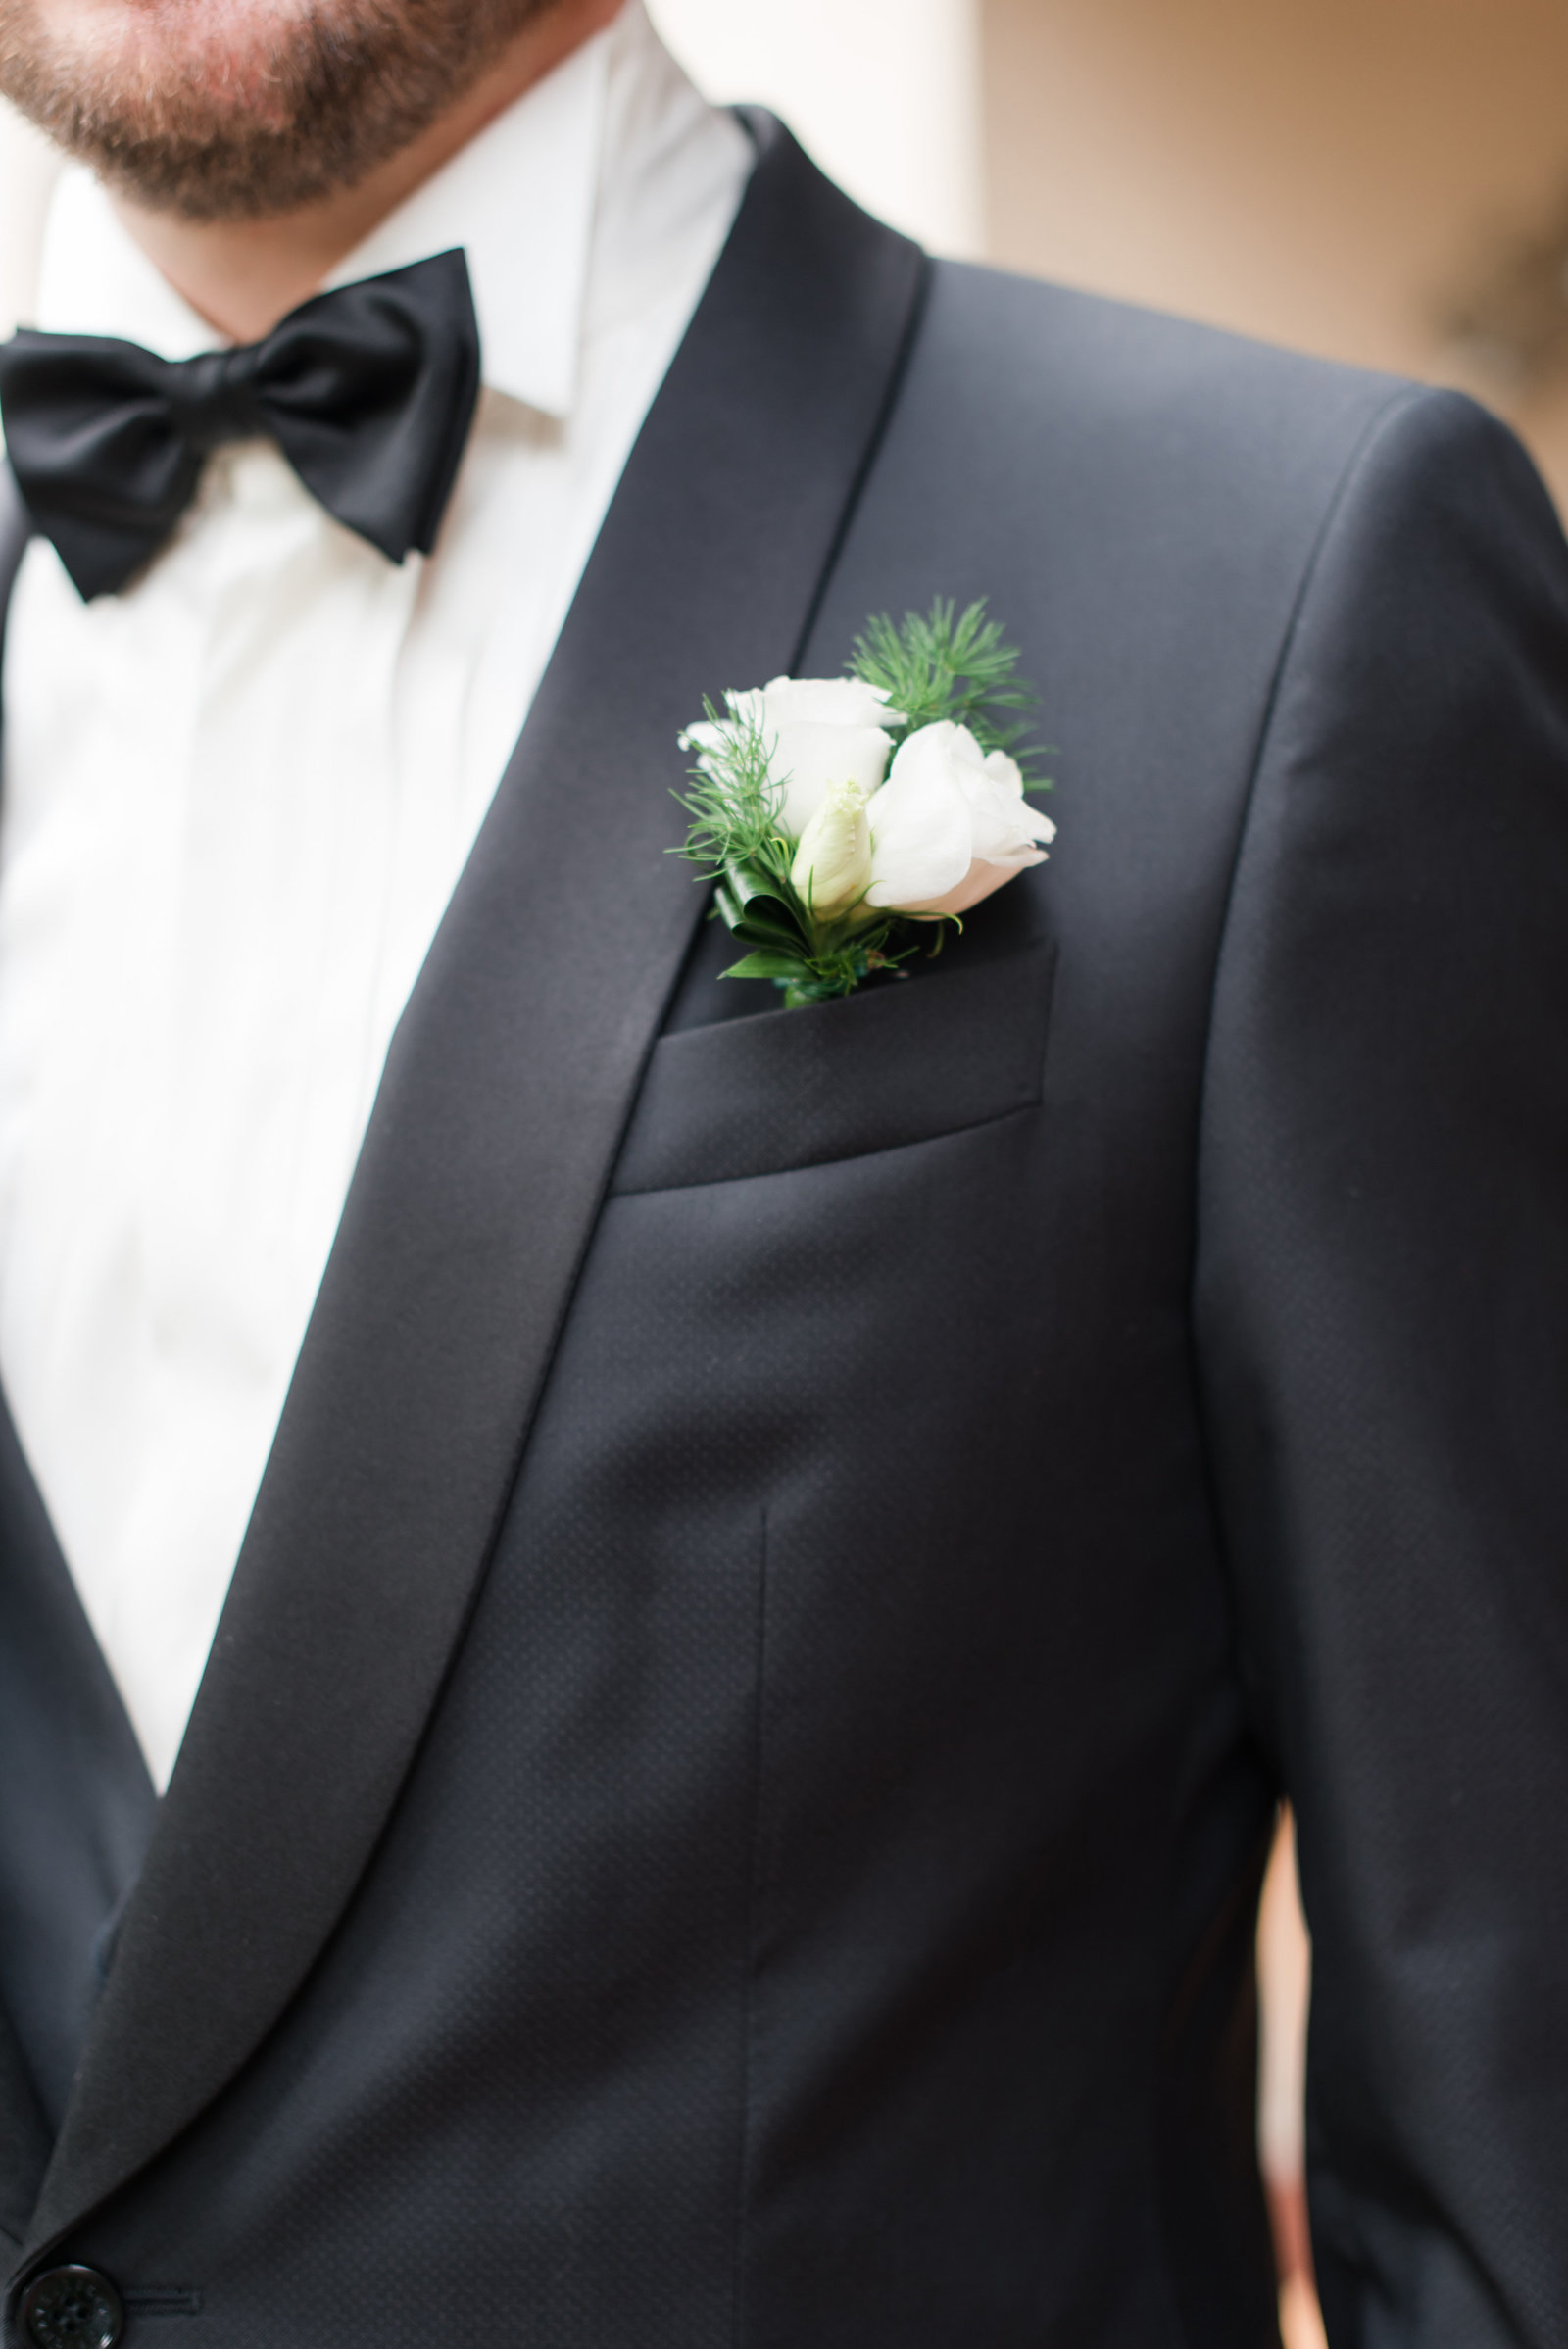 Upclose photo of Groom's attire